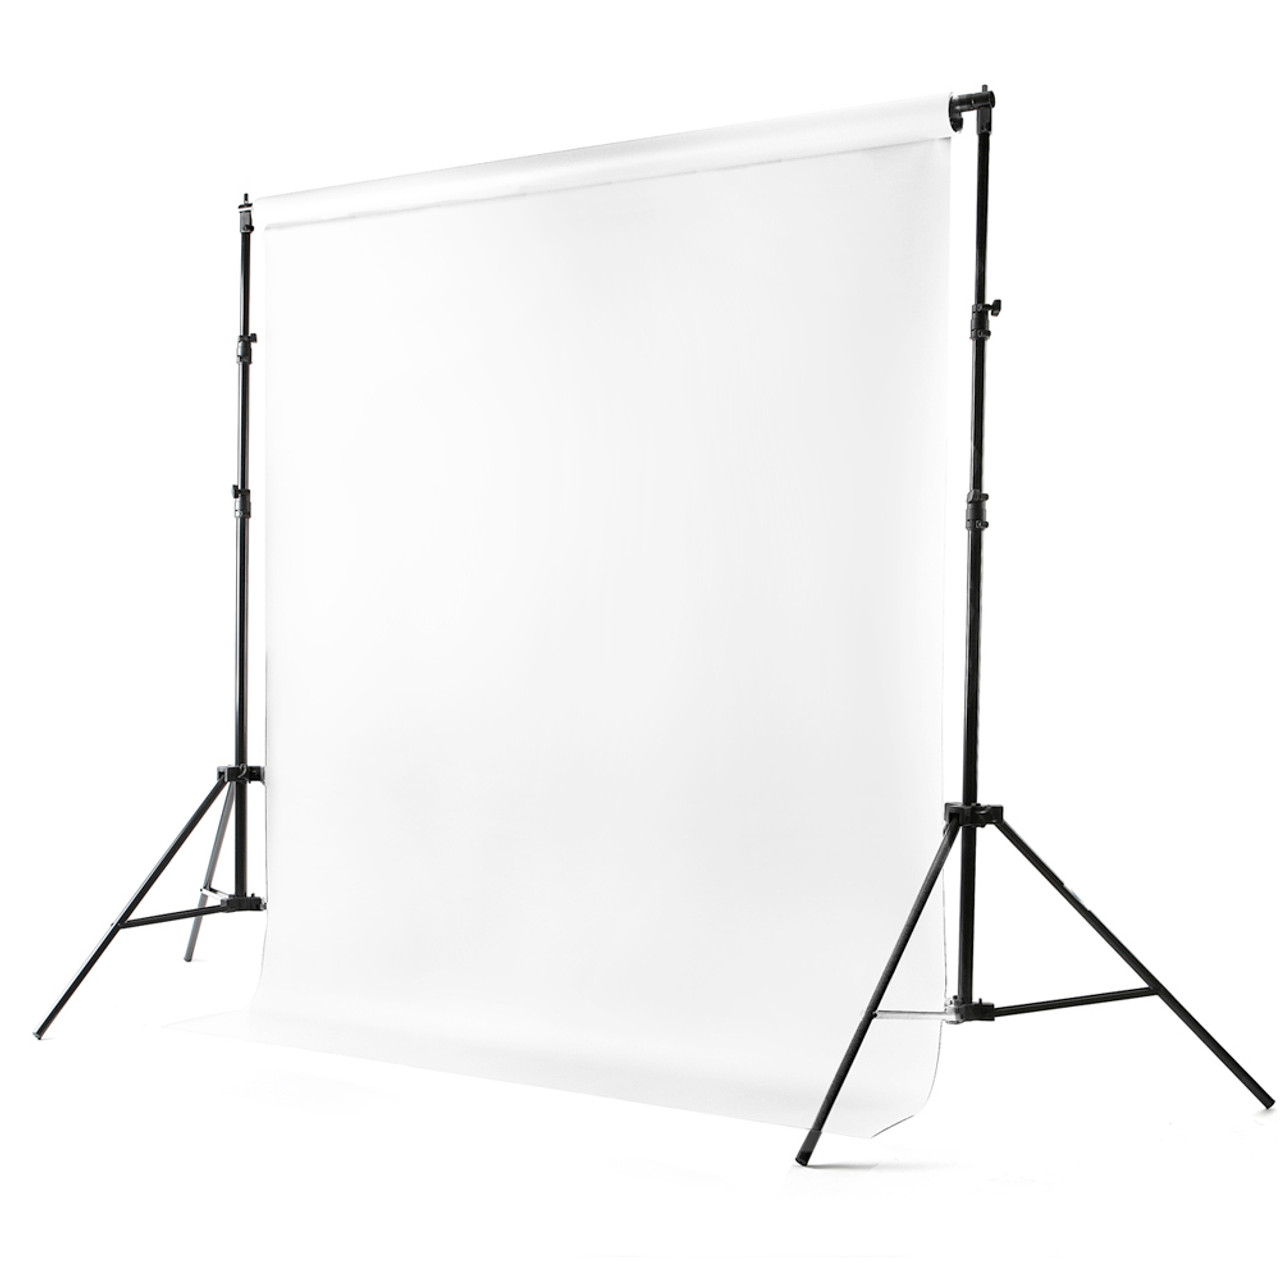 Pure White Vinyl Backdrop 8' x 10'